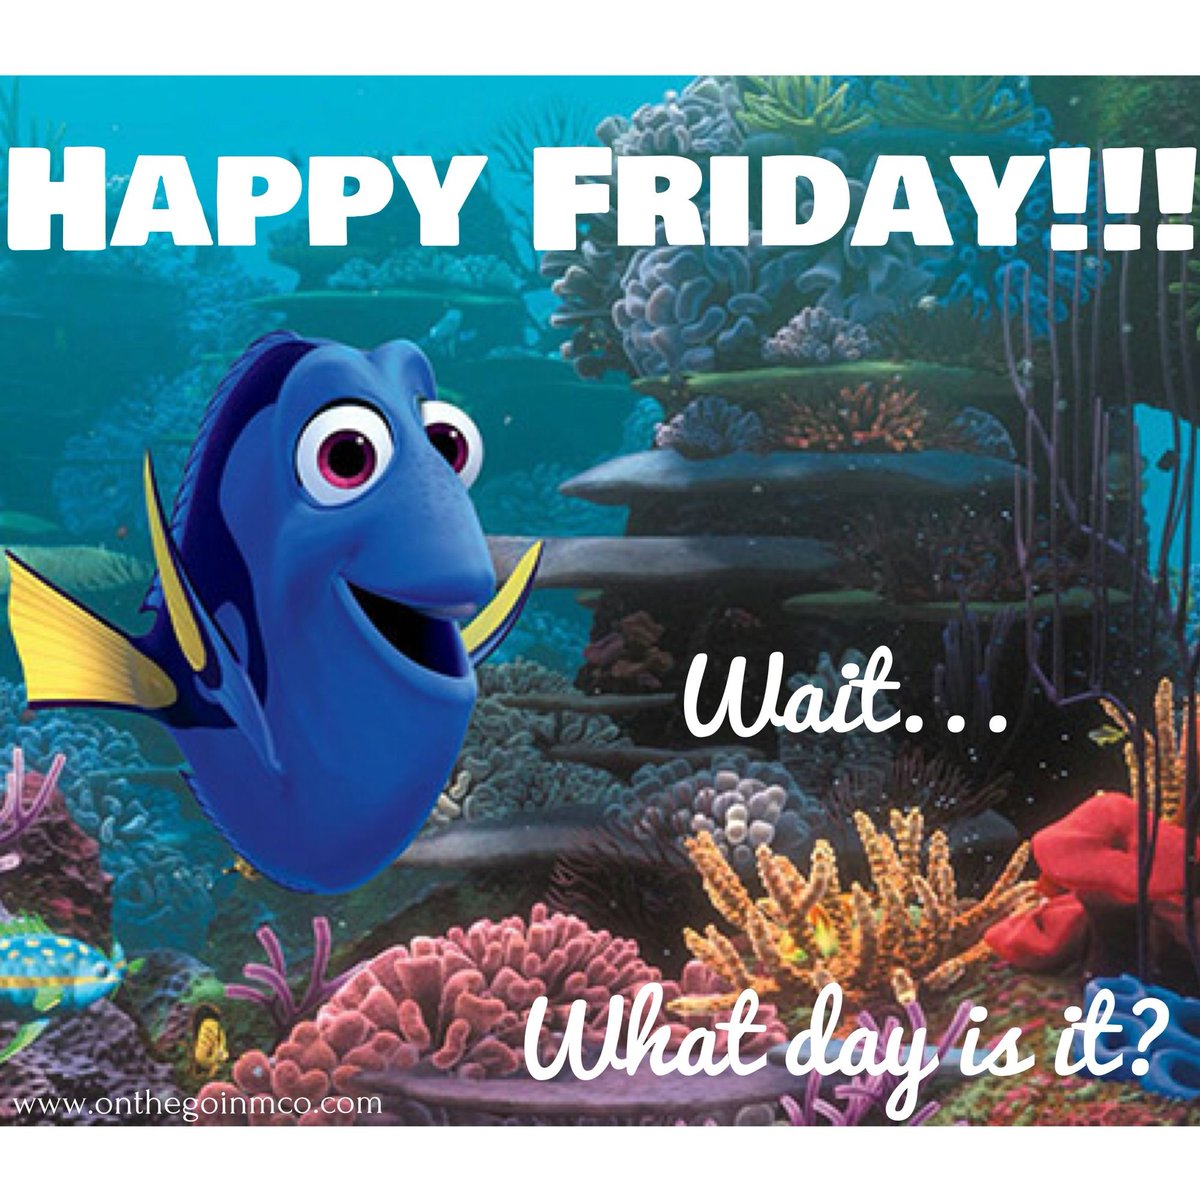 It's definitely Friday! We made it...  Everyone enjoy your day and weekend ahead, and as always, call us if you need us. We're always here for you!  #BNPD #FinallyFriday #FridayVibes #CommunityFirst